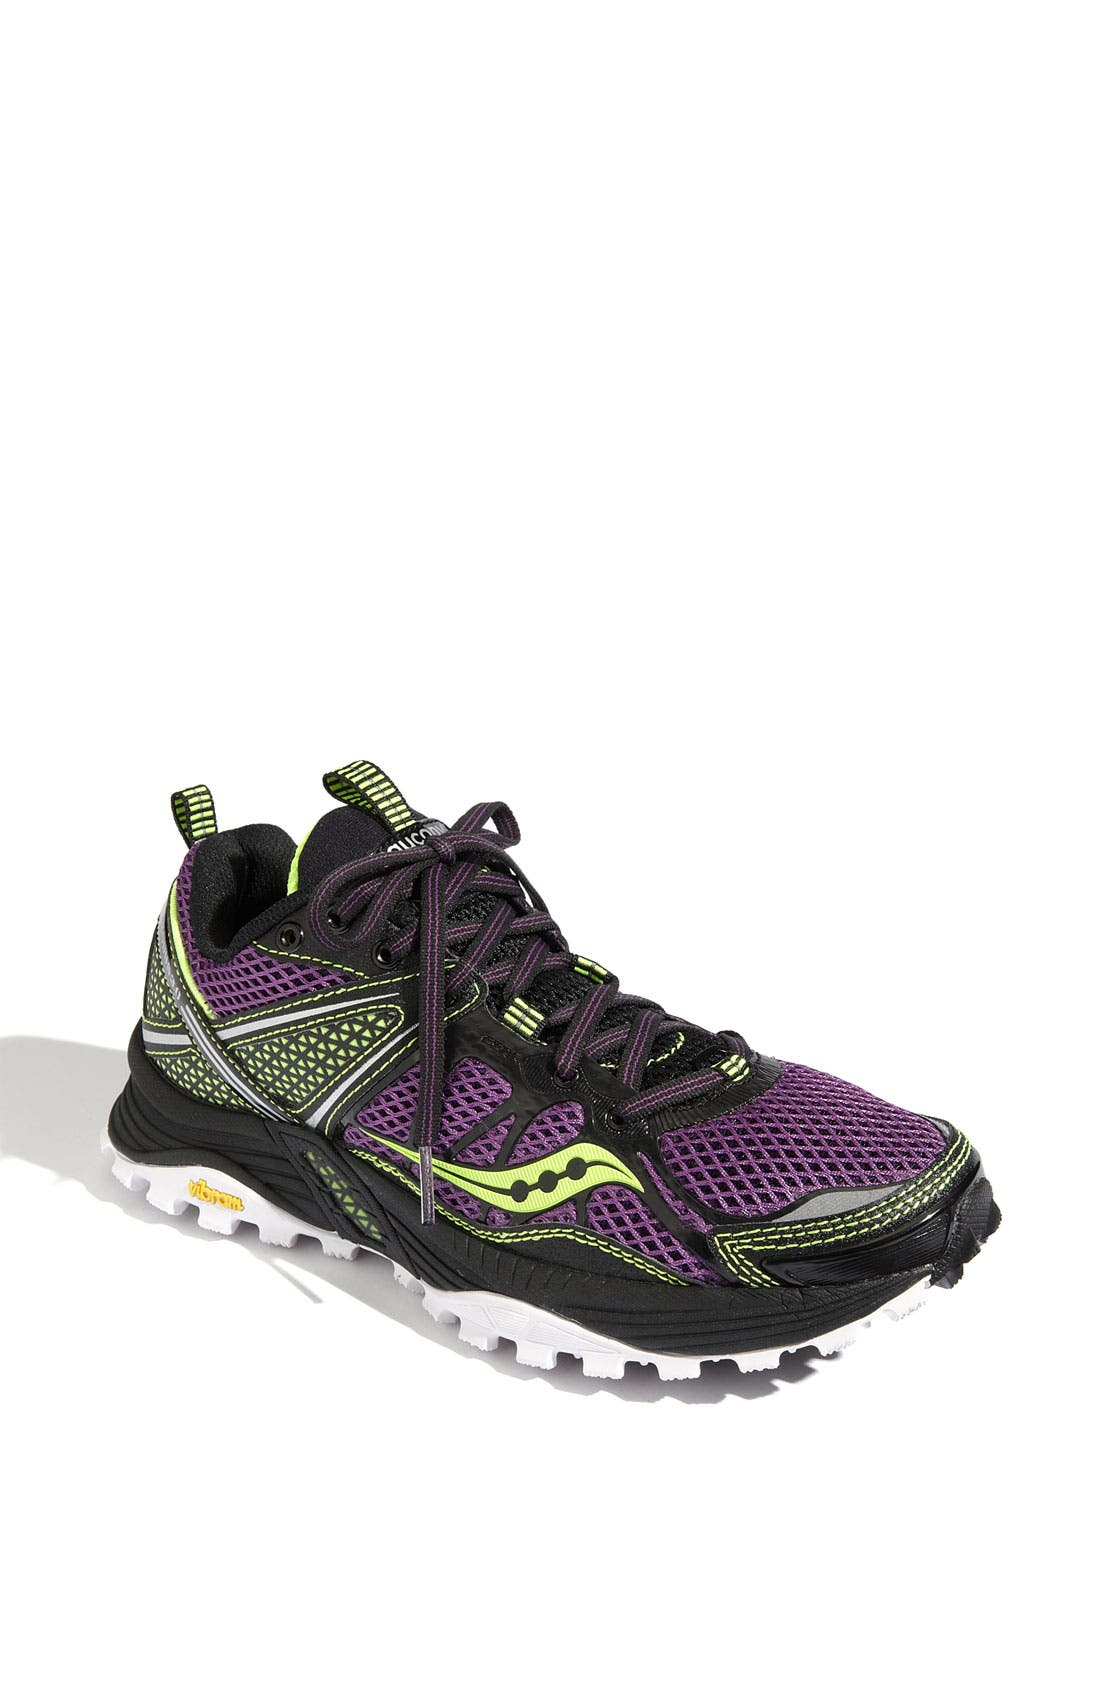 Alternate Image 1 Selected - Saucony 'ProGrid Xodus 3.0' Running Shoe (Women)